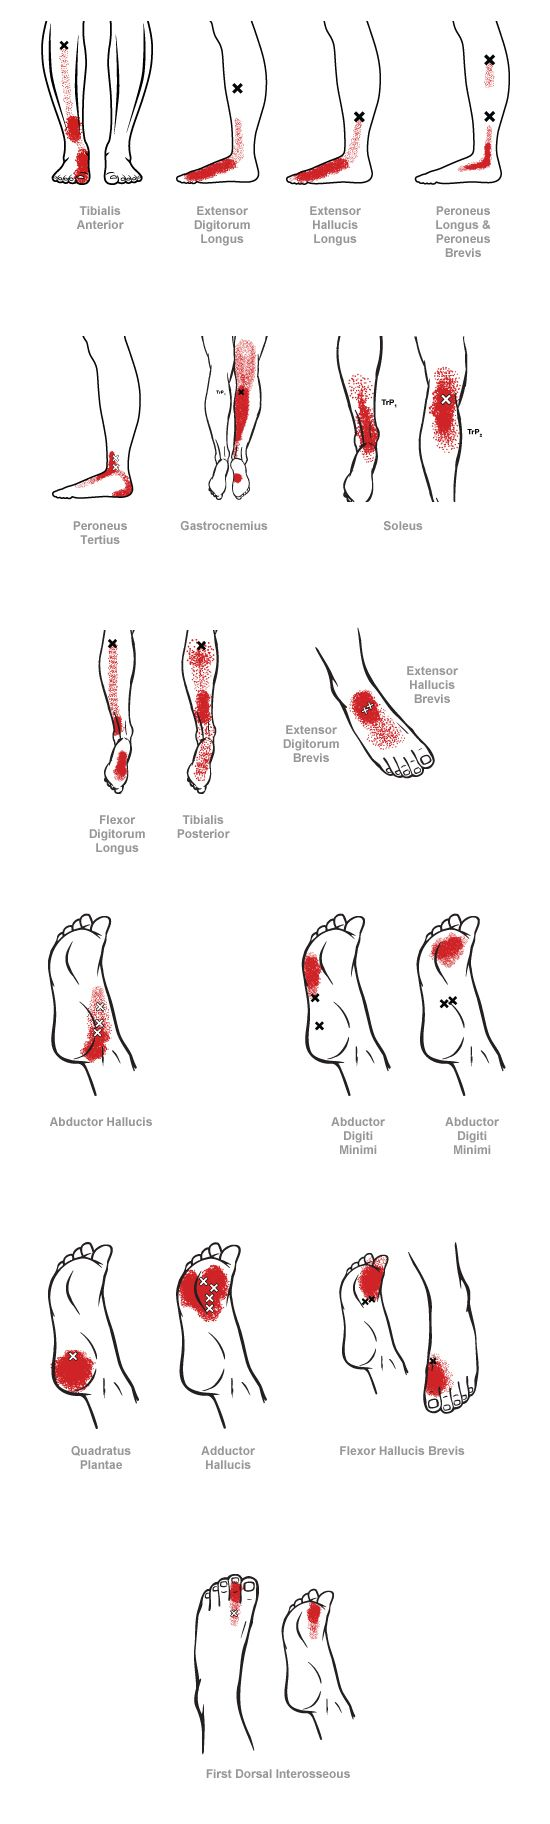 88 best Plantar Fasciitis, Heel Spurs & Foot Pain images on ...